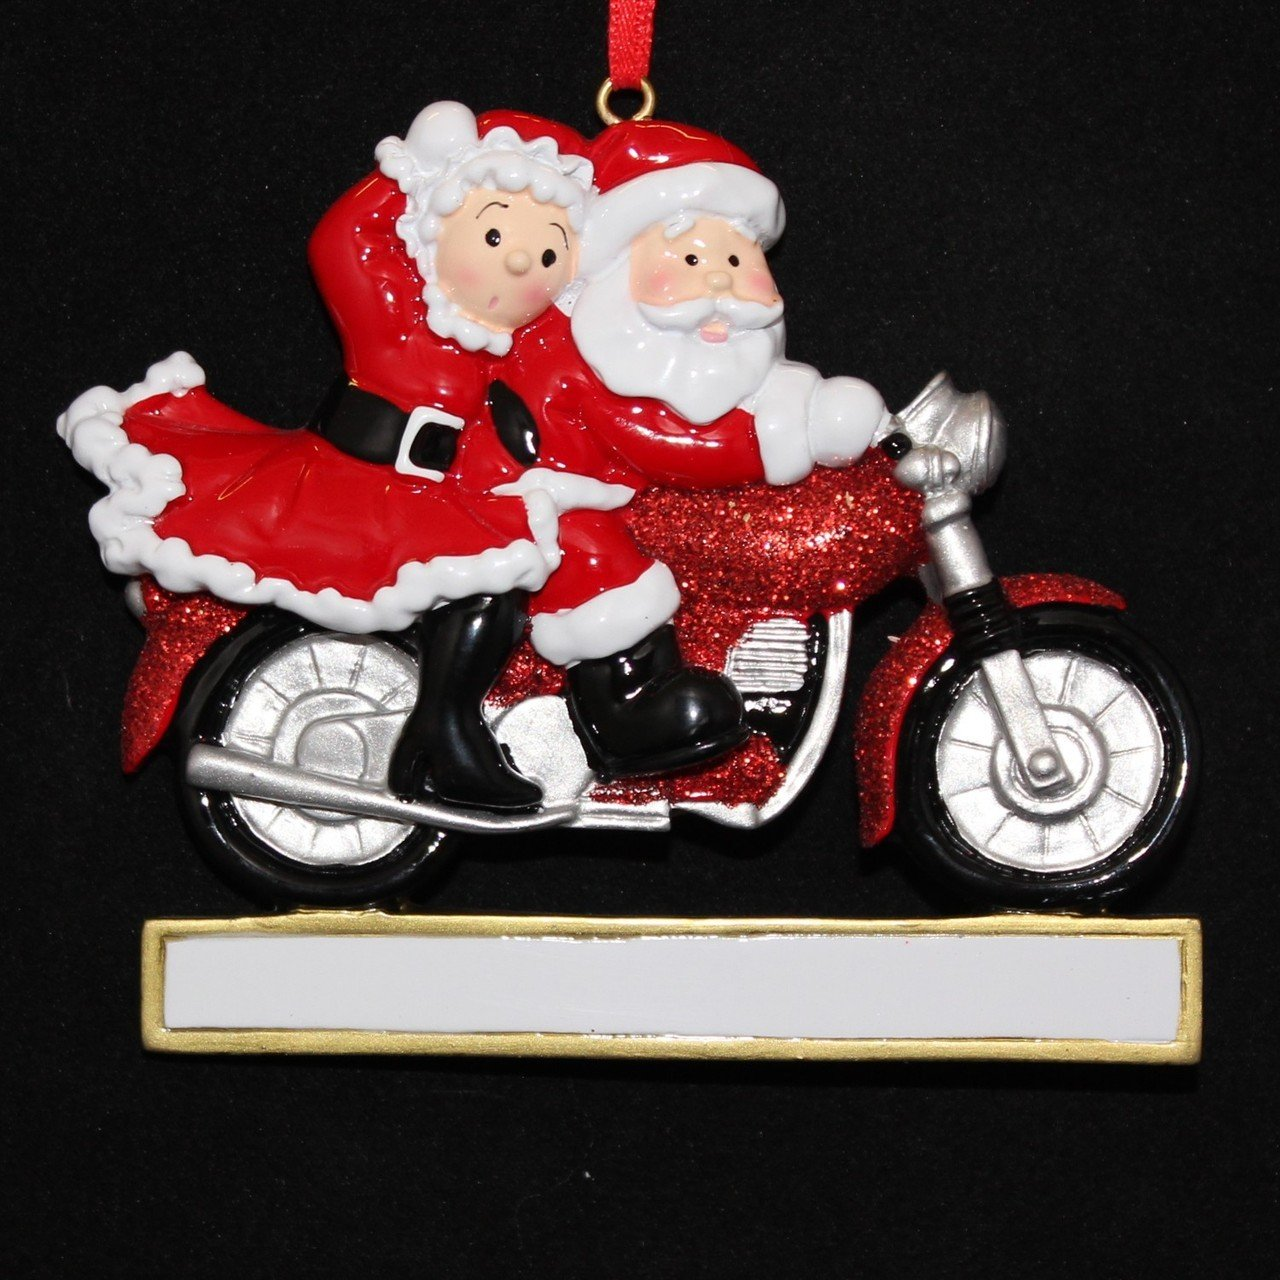 amazoncom personalized motorcycle couple santa christmas holiday gift expertly handwritten ornament home kitchen